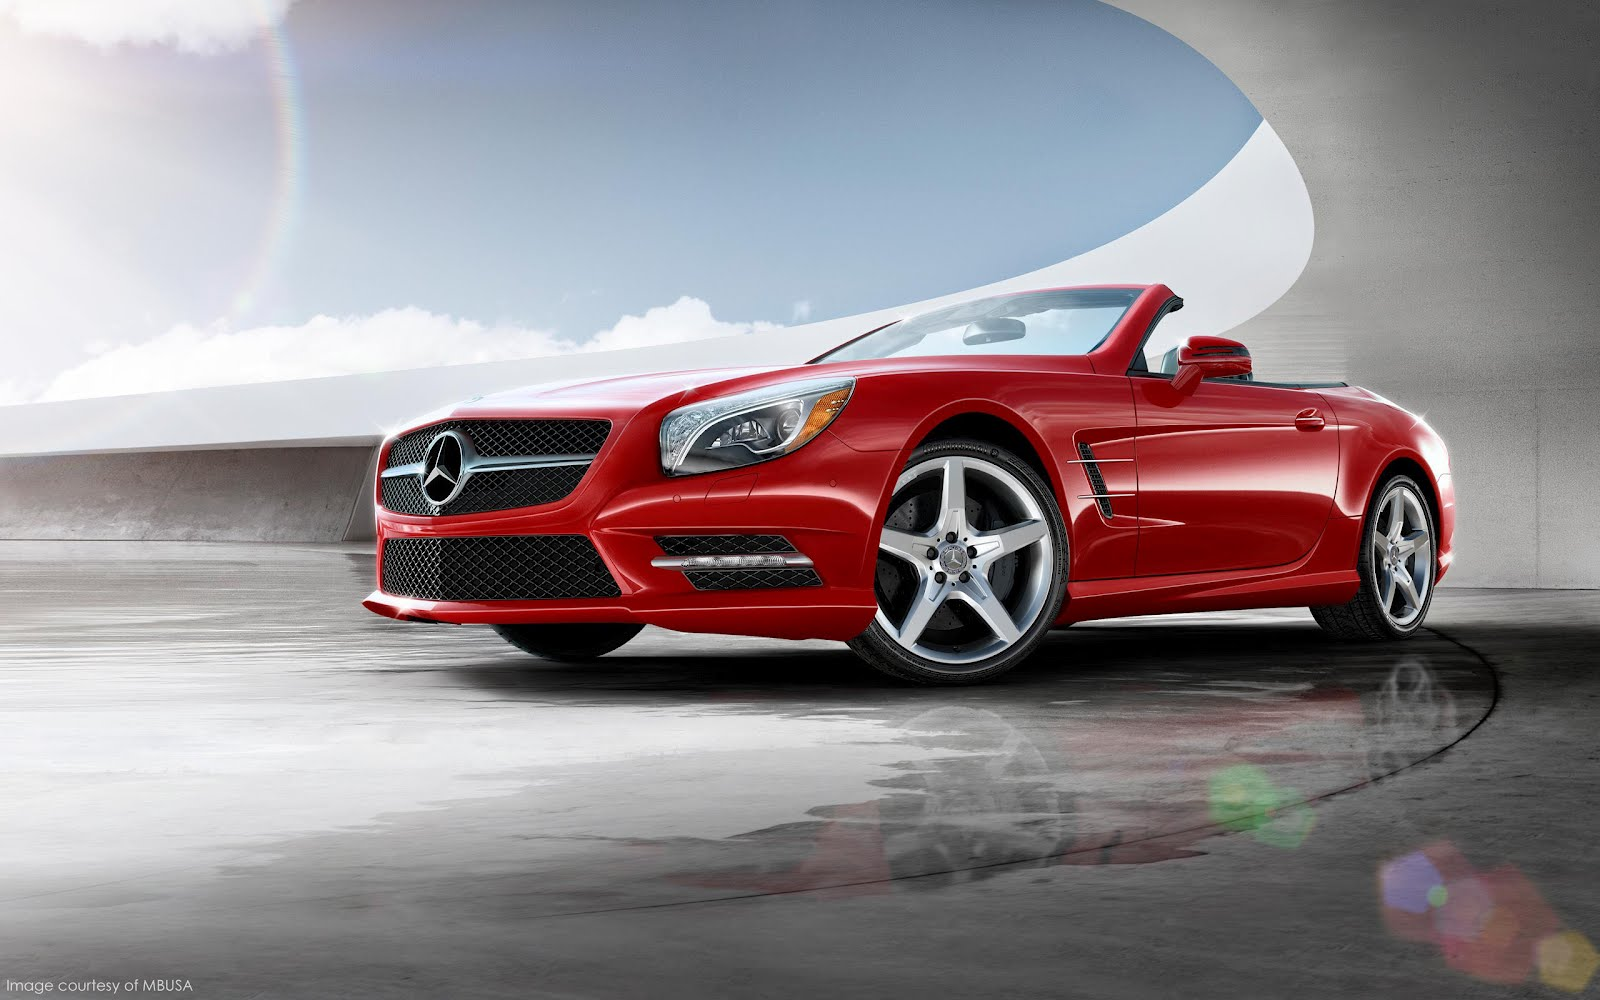 2013 mercedes benz sl renders cg daily news for 2013 mercedes benz sl